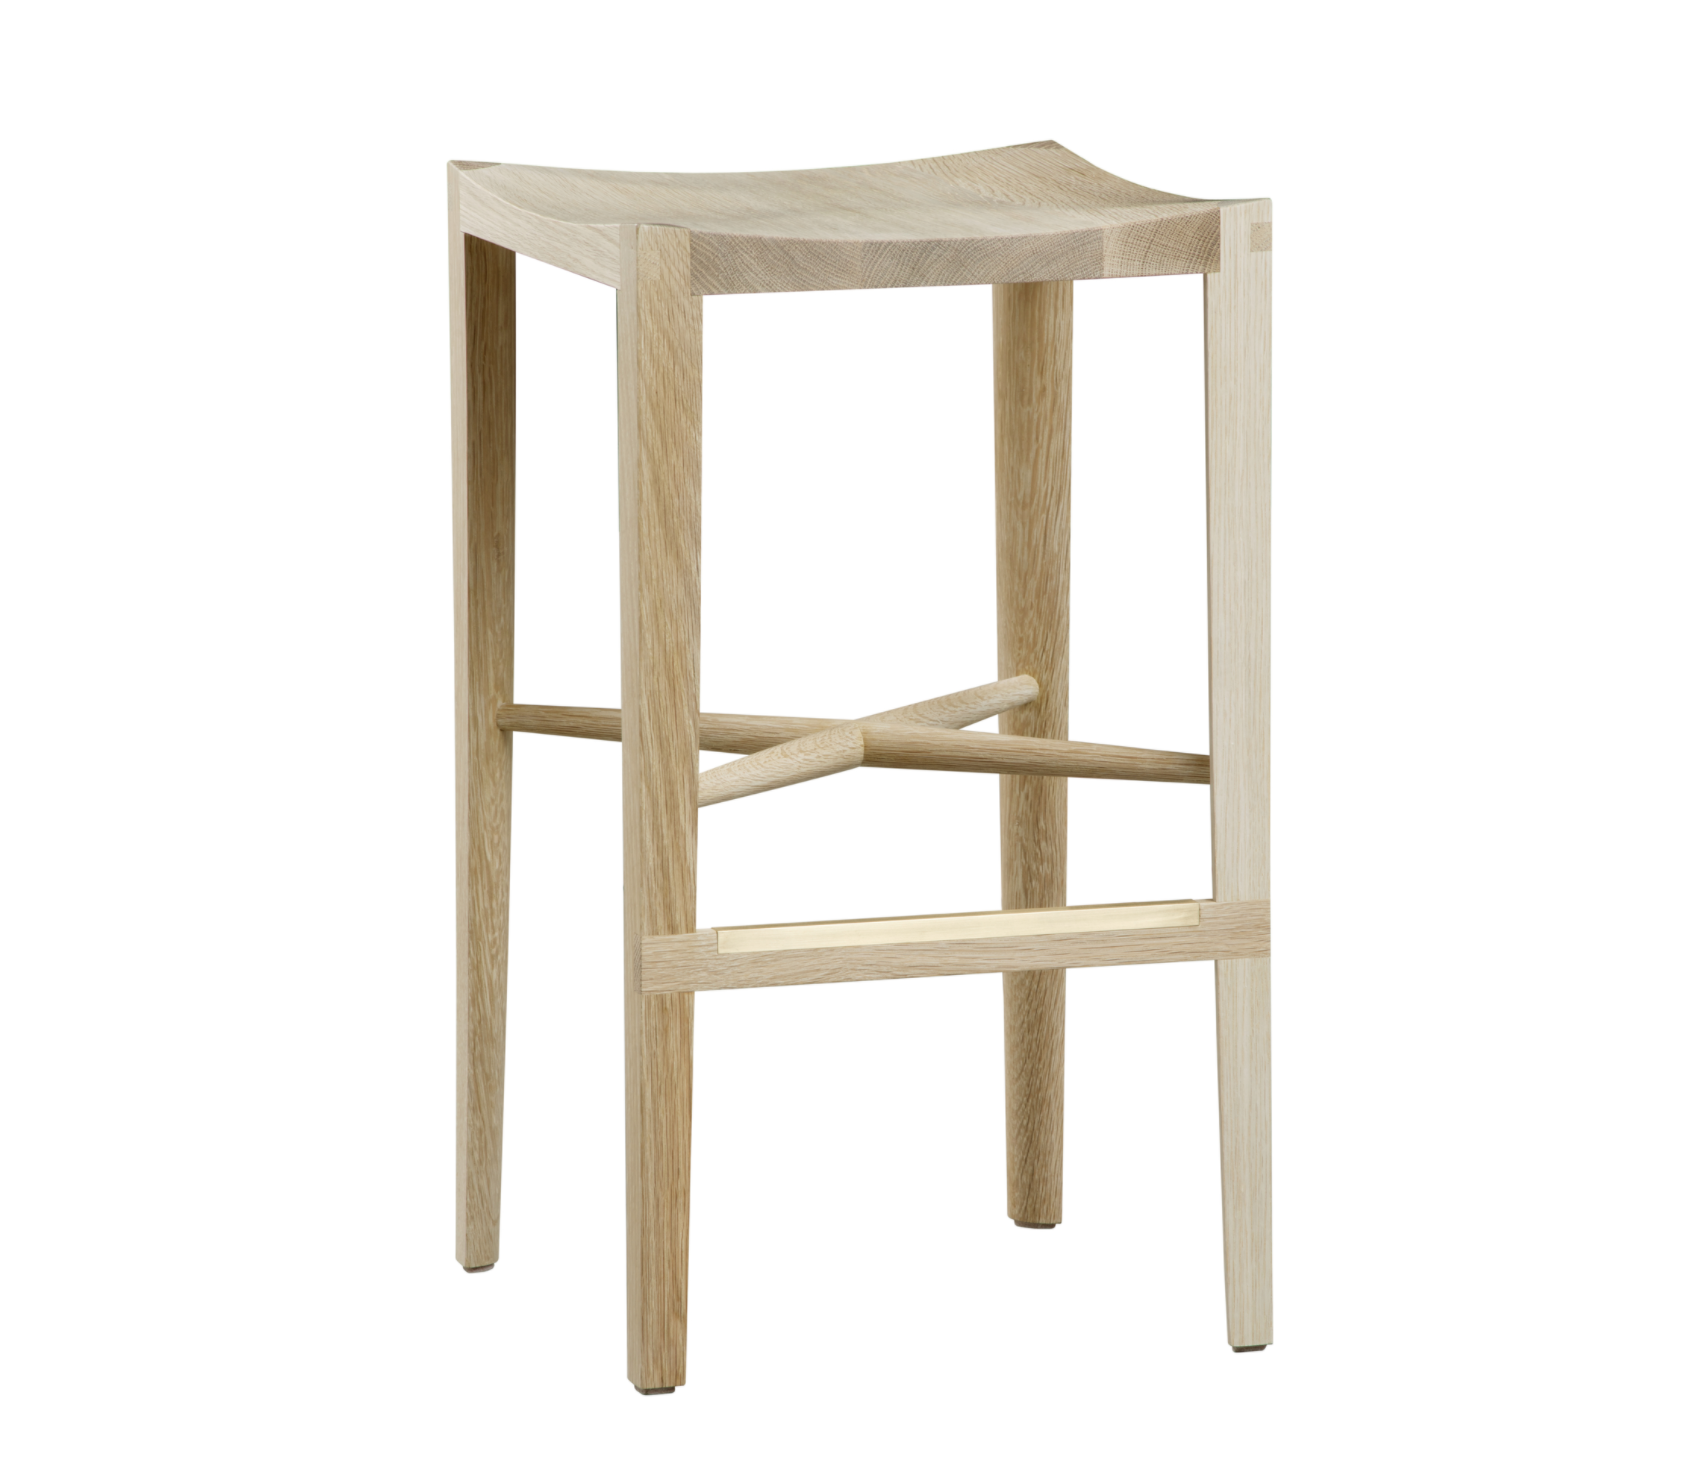 angled view of a Backless Quarter Round Bar Stool by artist Christopher Kurtz